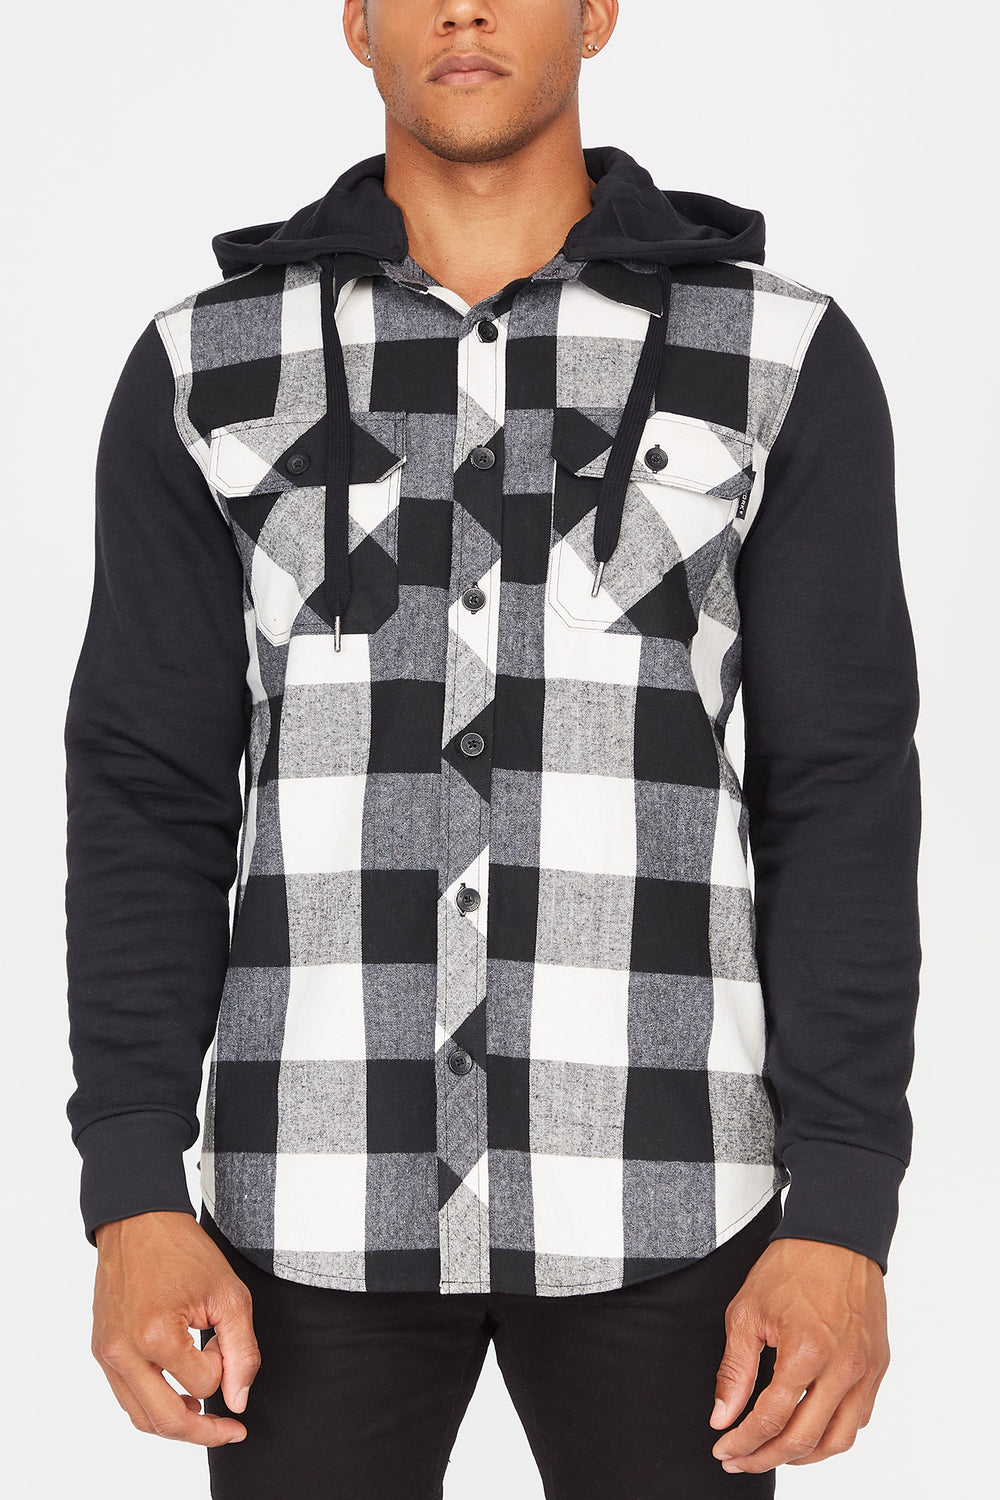 Zoo York Mens Hooded Flannel Button-Up Shirt White